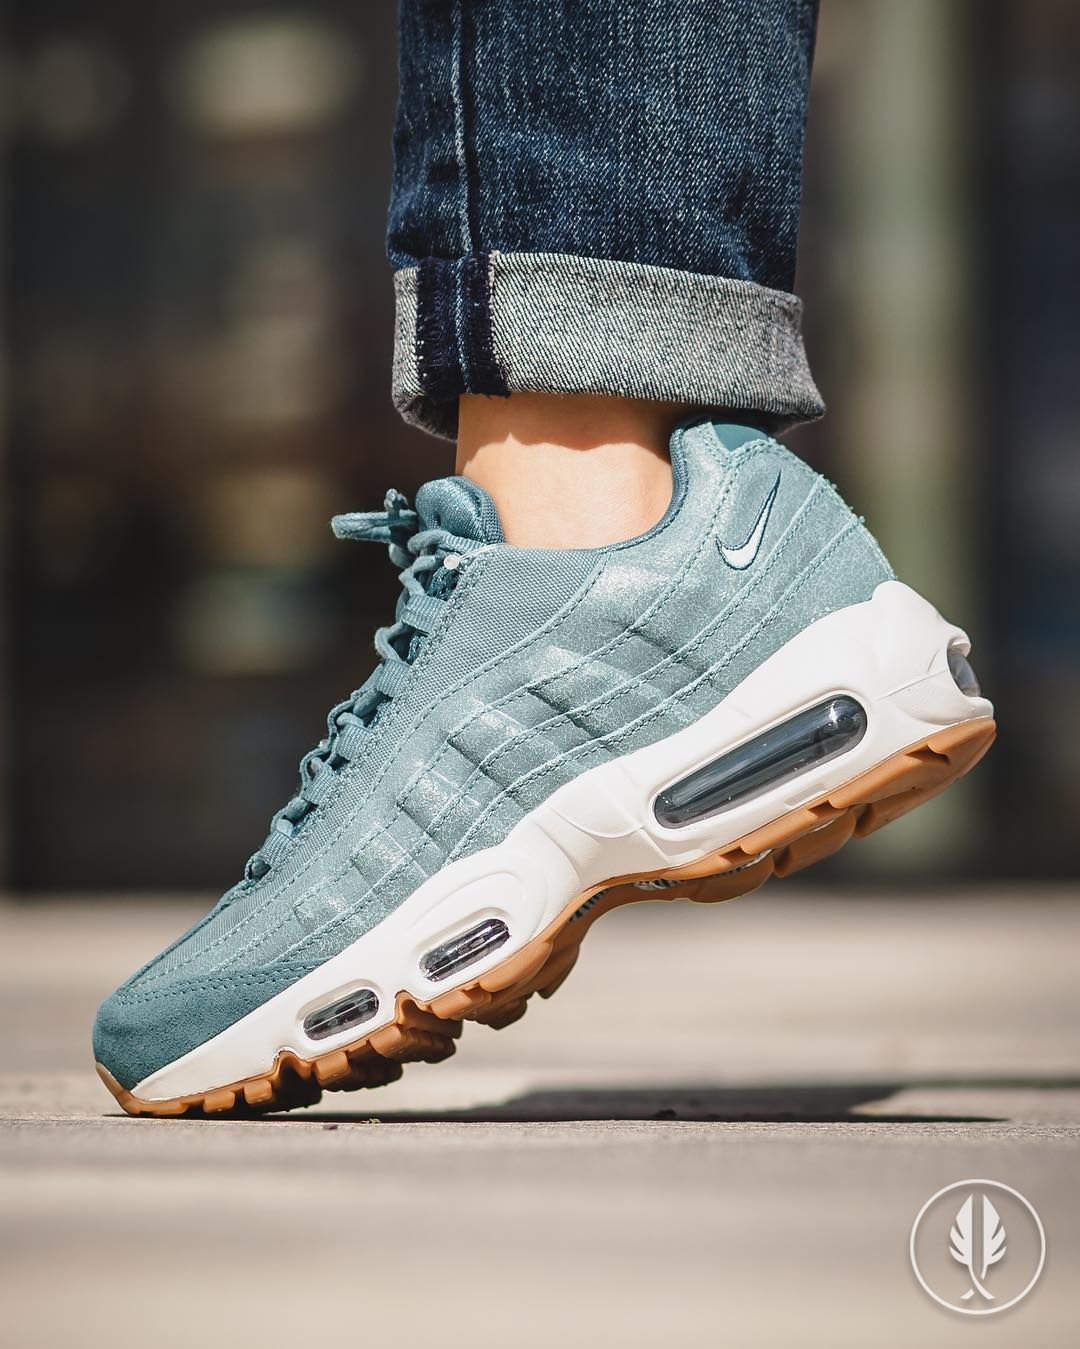 buy online 245ed 670ff ... coupon code queenoutfitter air max 95 912f0 604fb